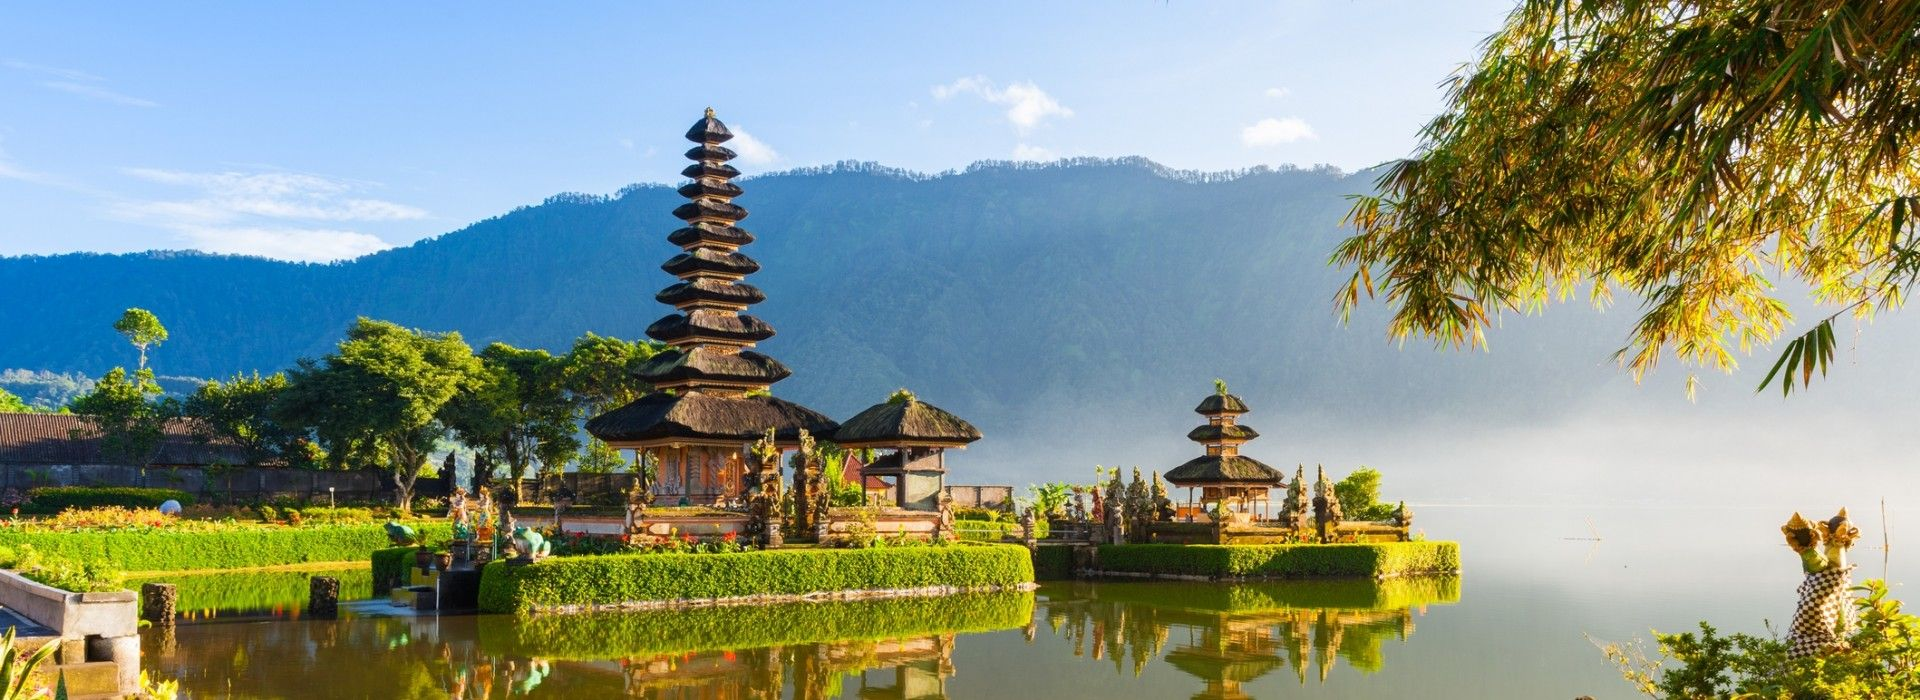 Sightseeing, attractions, culture and history Tours in Candidasa